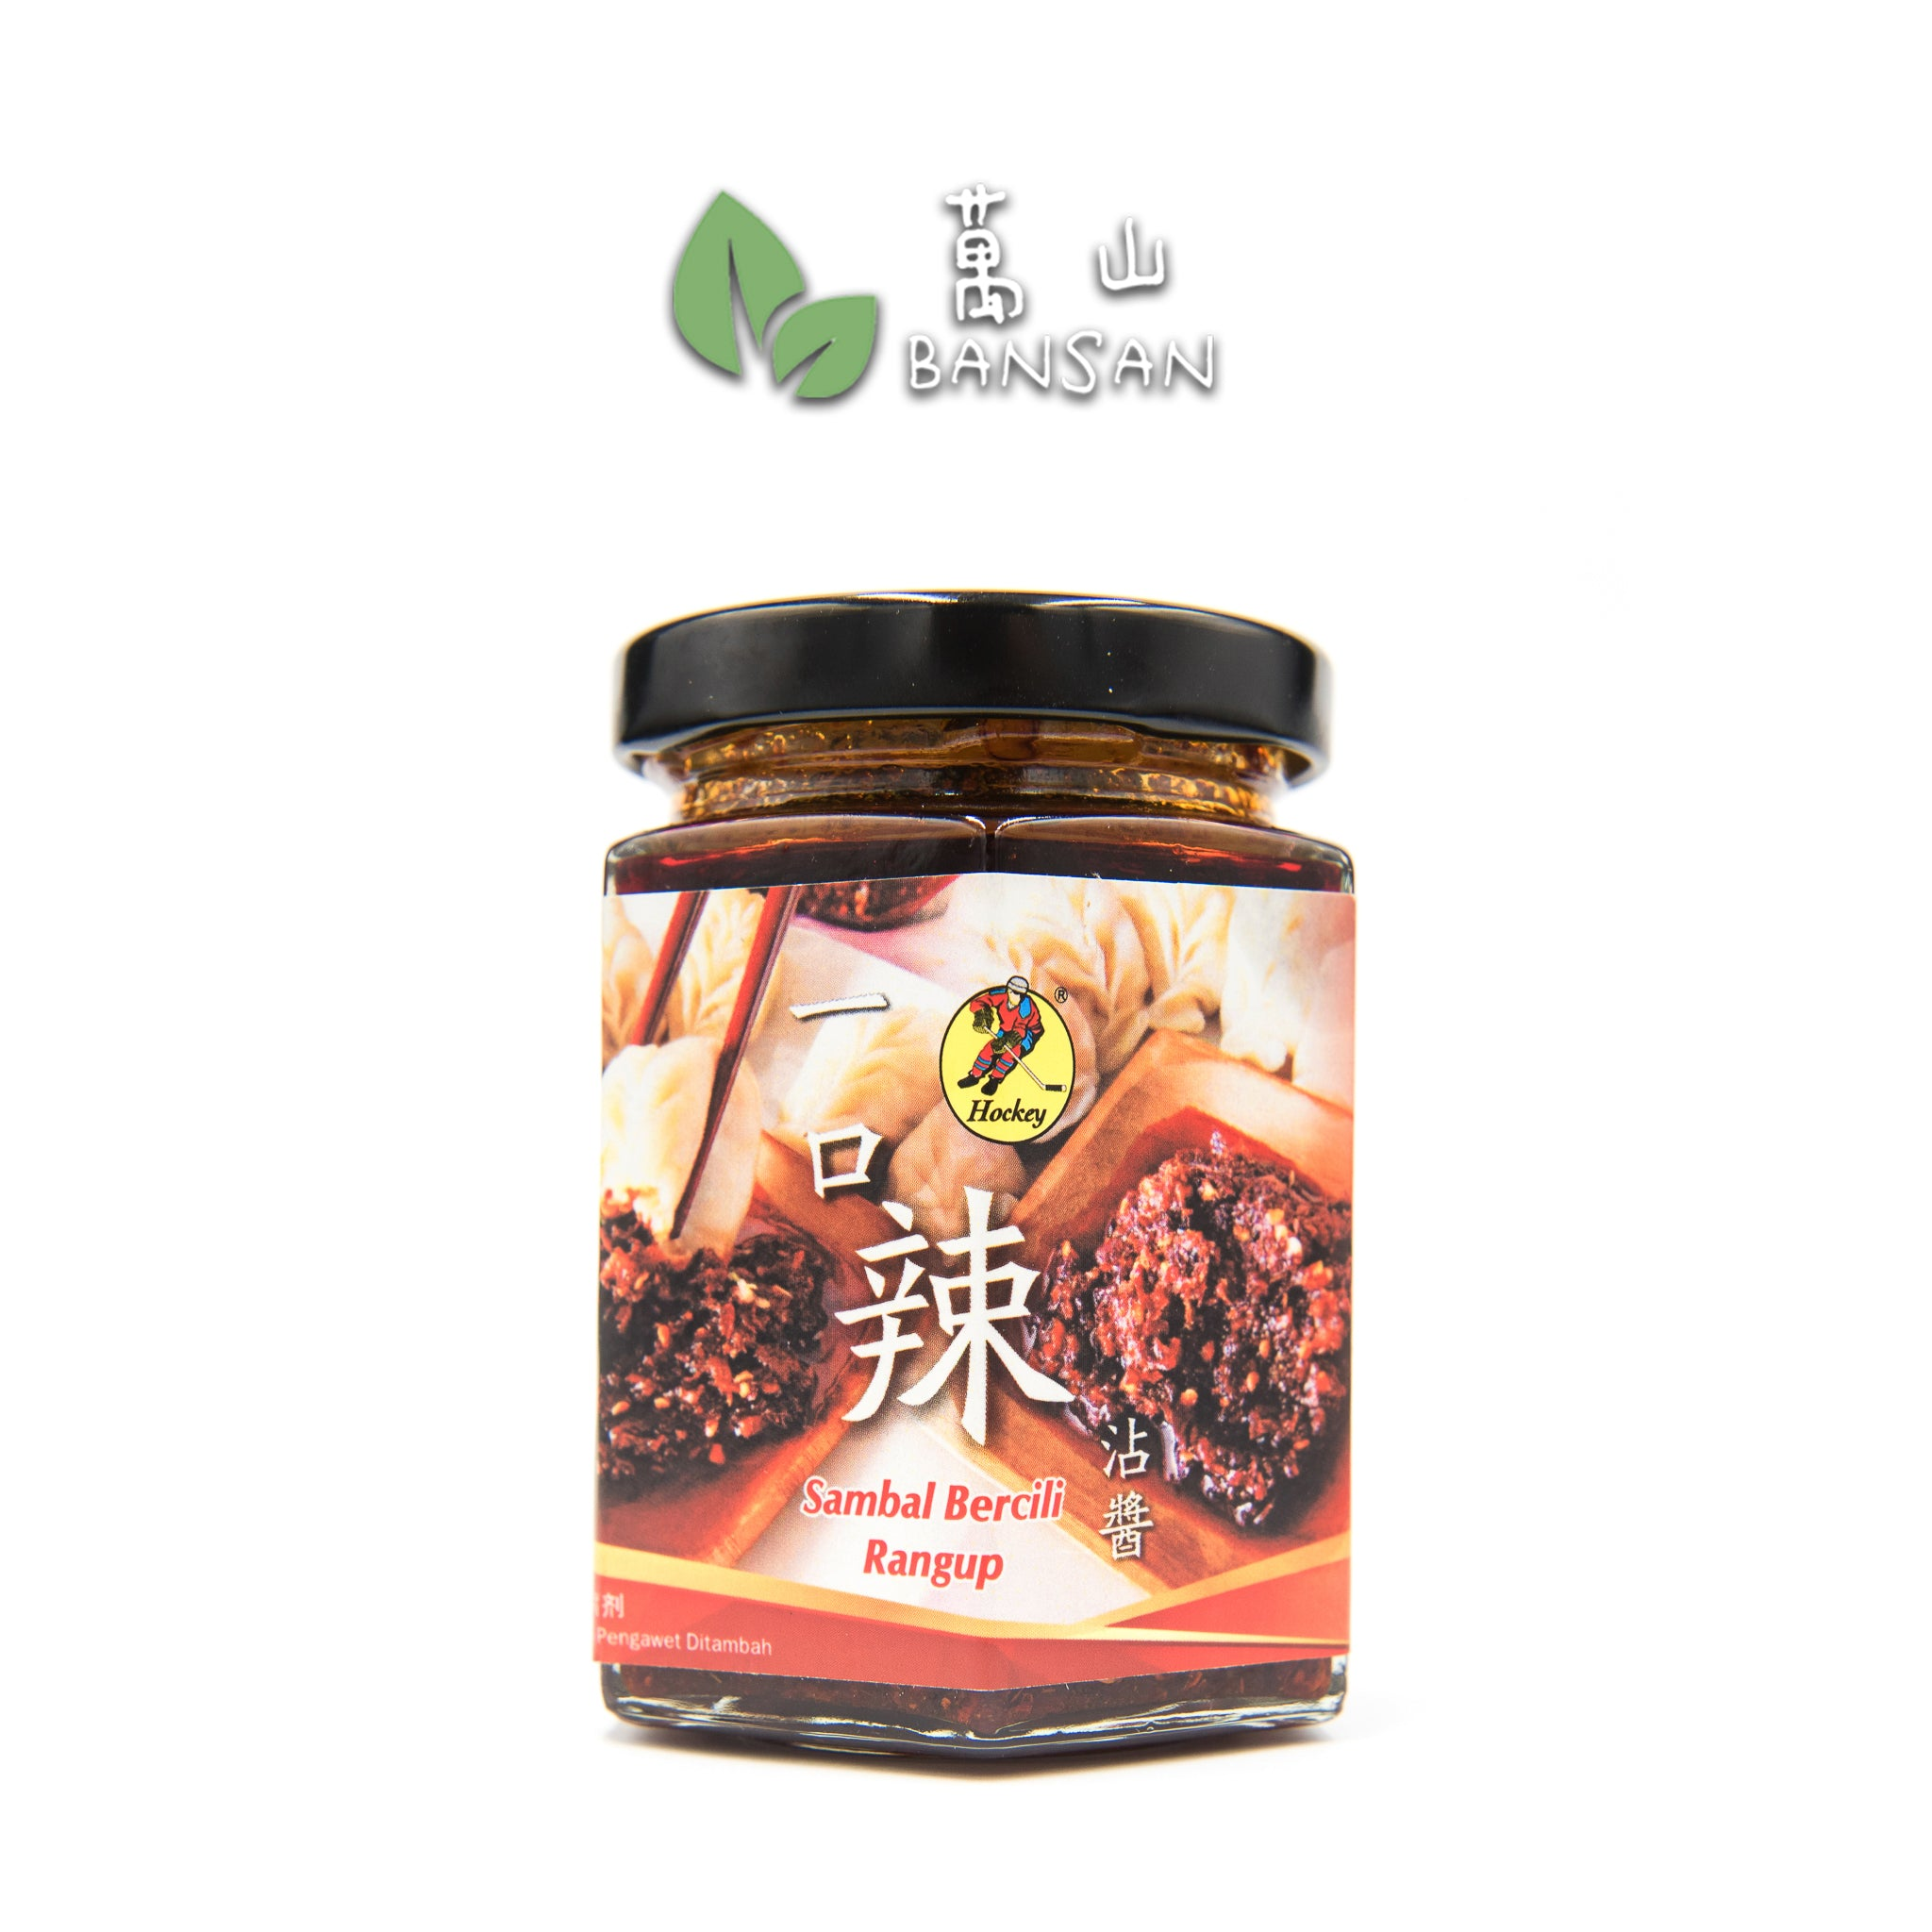 Penang Grocery Store Online Next Day Delivery is Offering Sambal Bercili Rangup 一口辣 沾酱